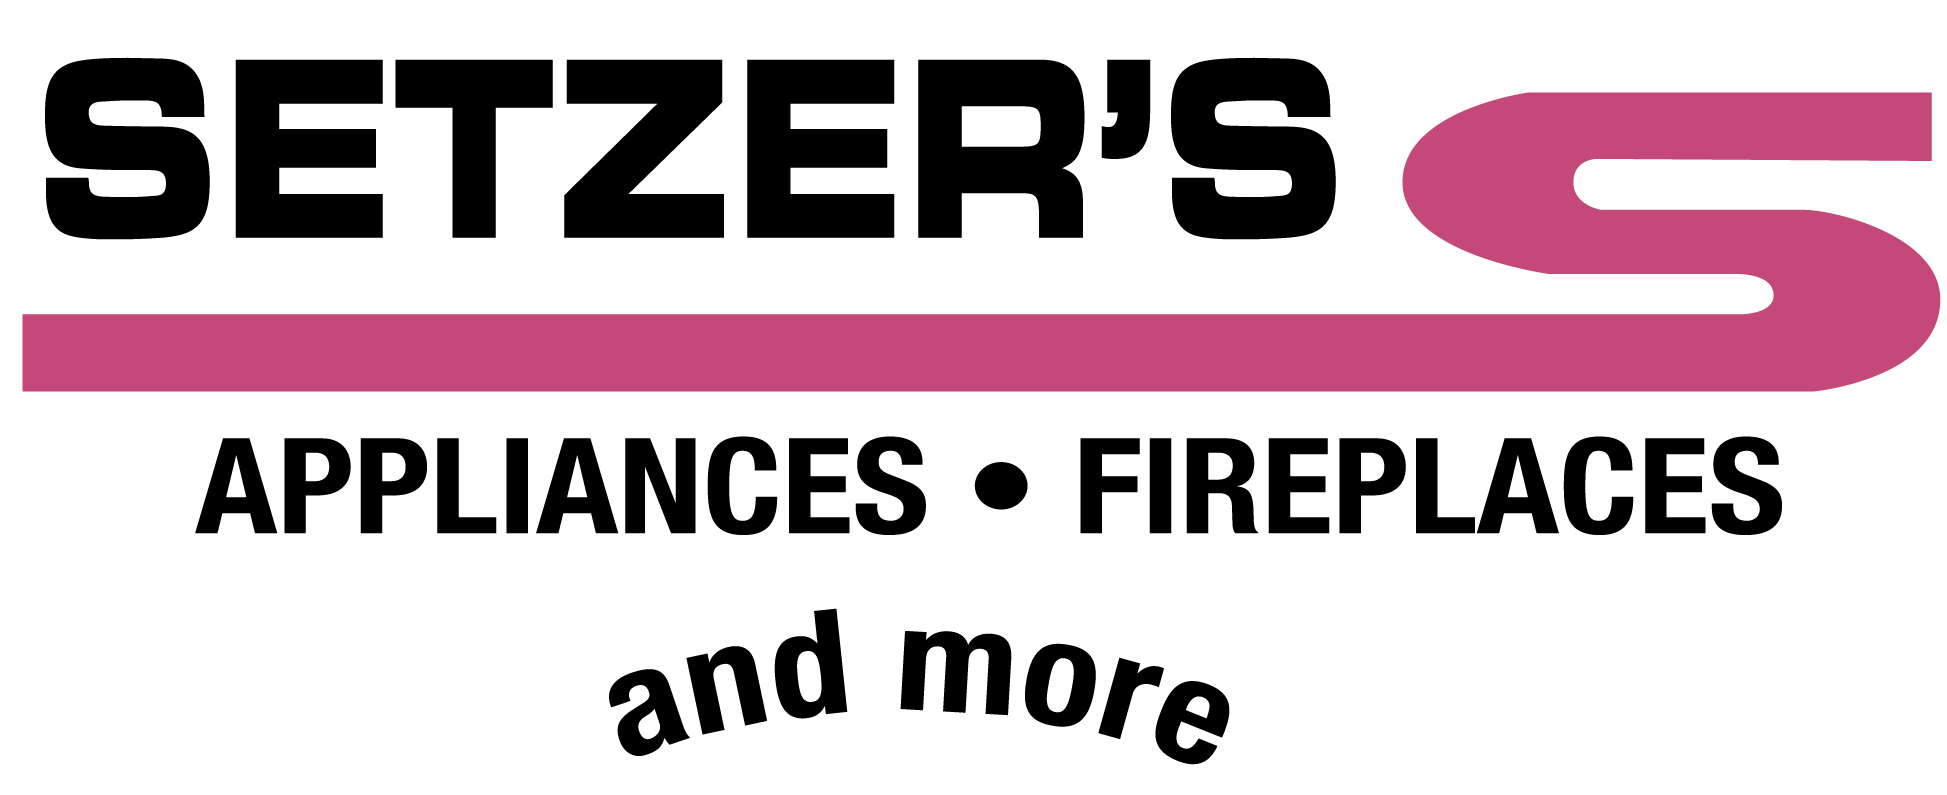 Setzer's Appliances fireplaces and more logo